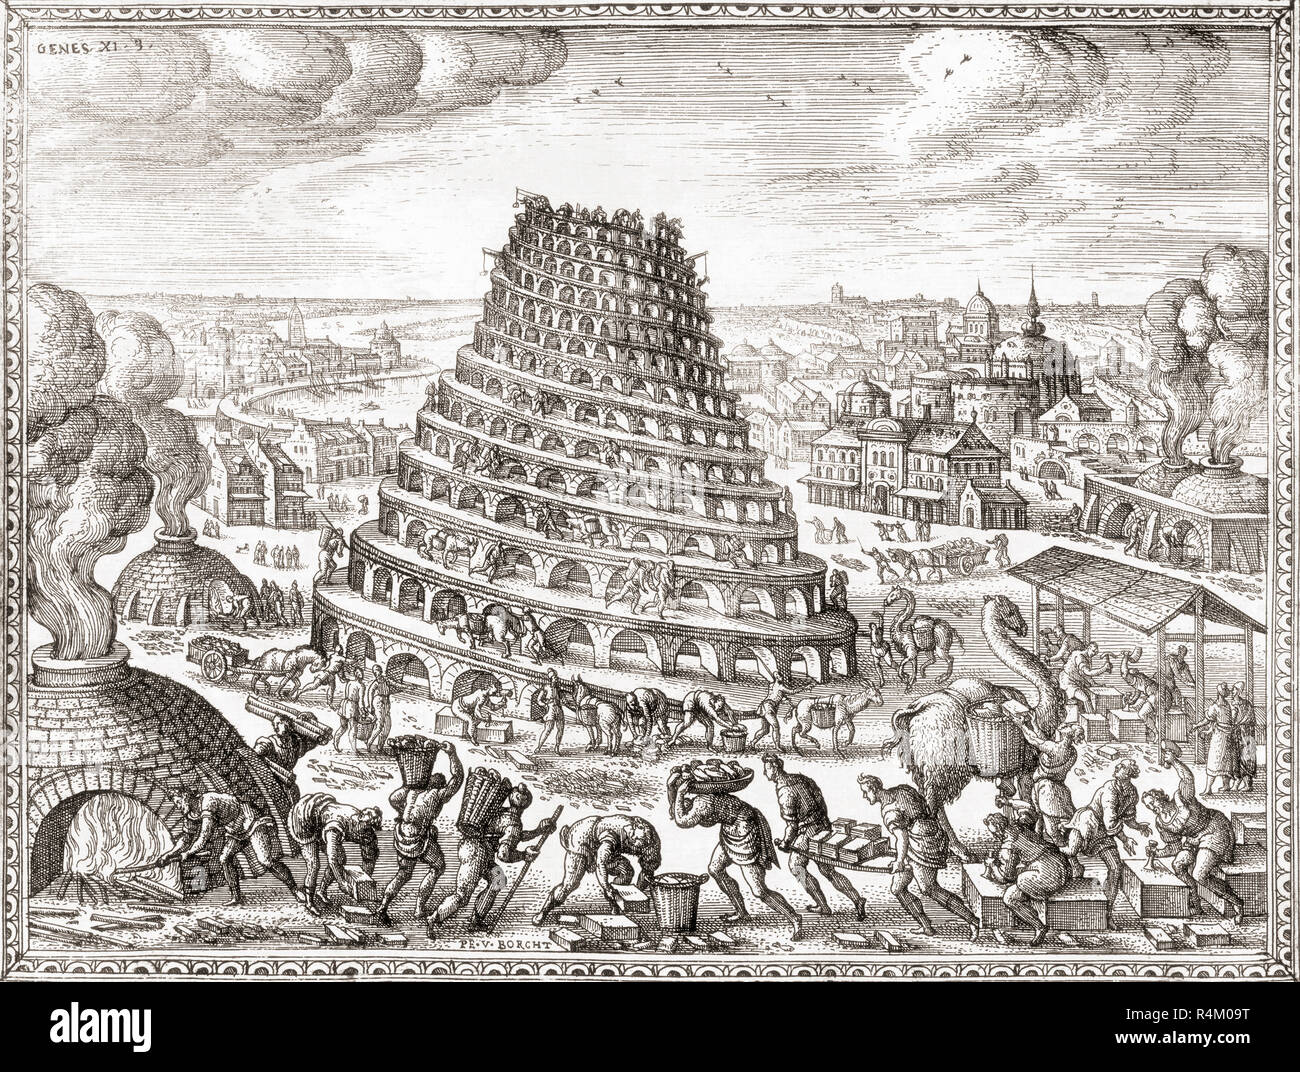 Construction of the Tower of Babel.  After a 17th century print. - Stock Image